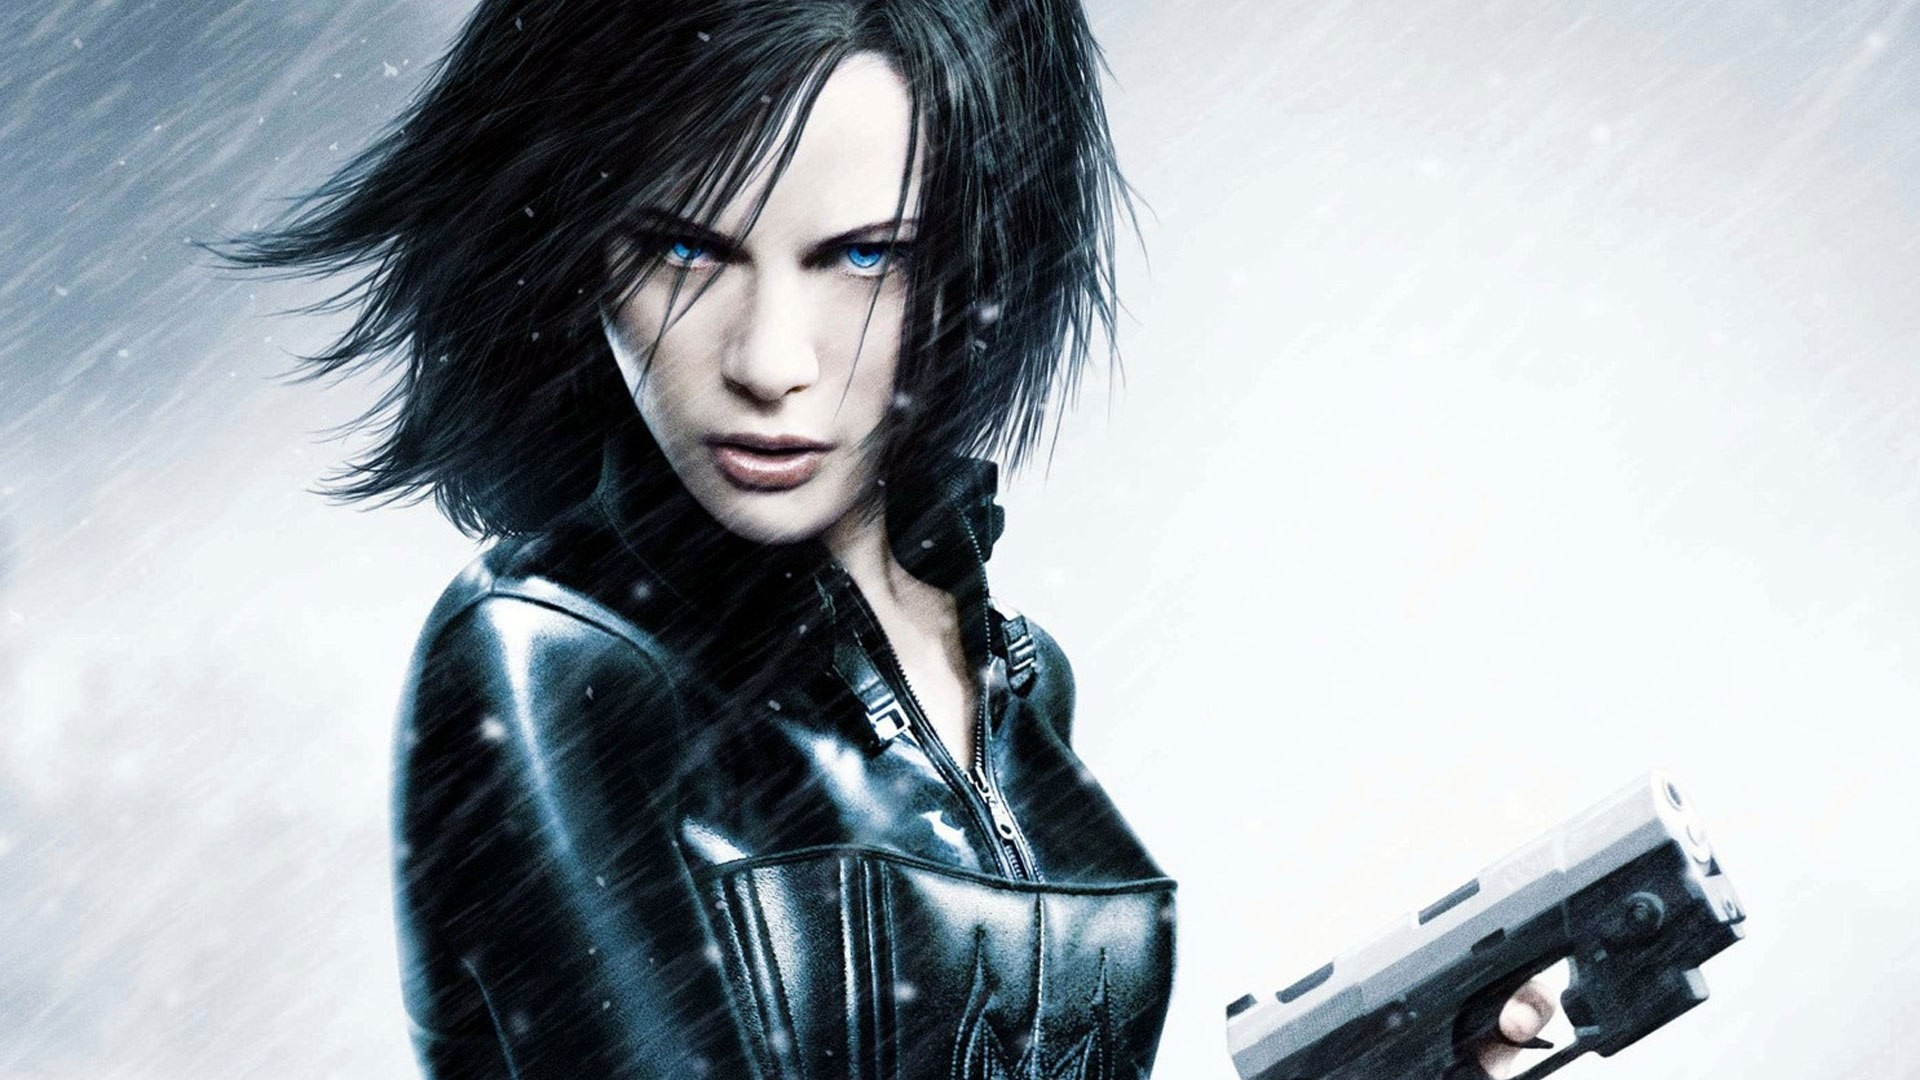 woman Guns blue eyes HD Wallpaper